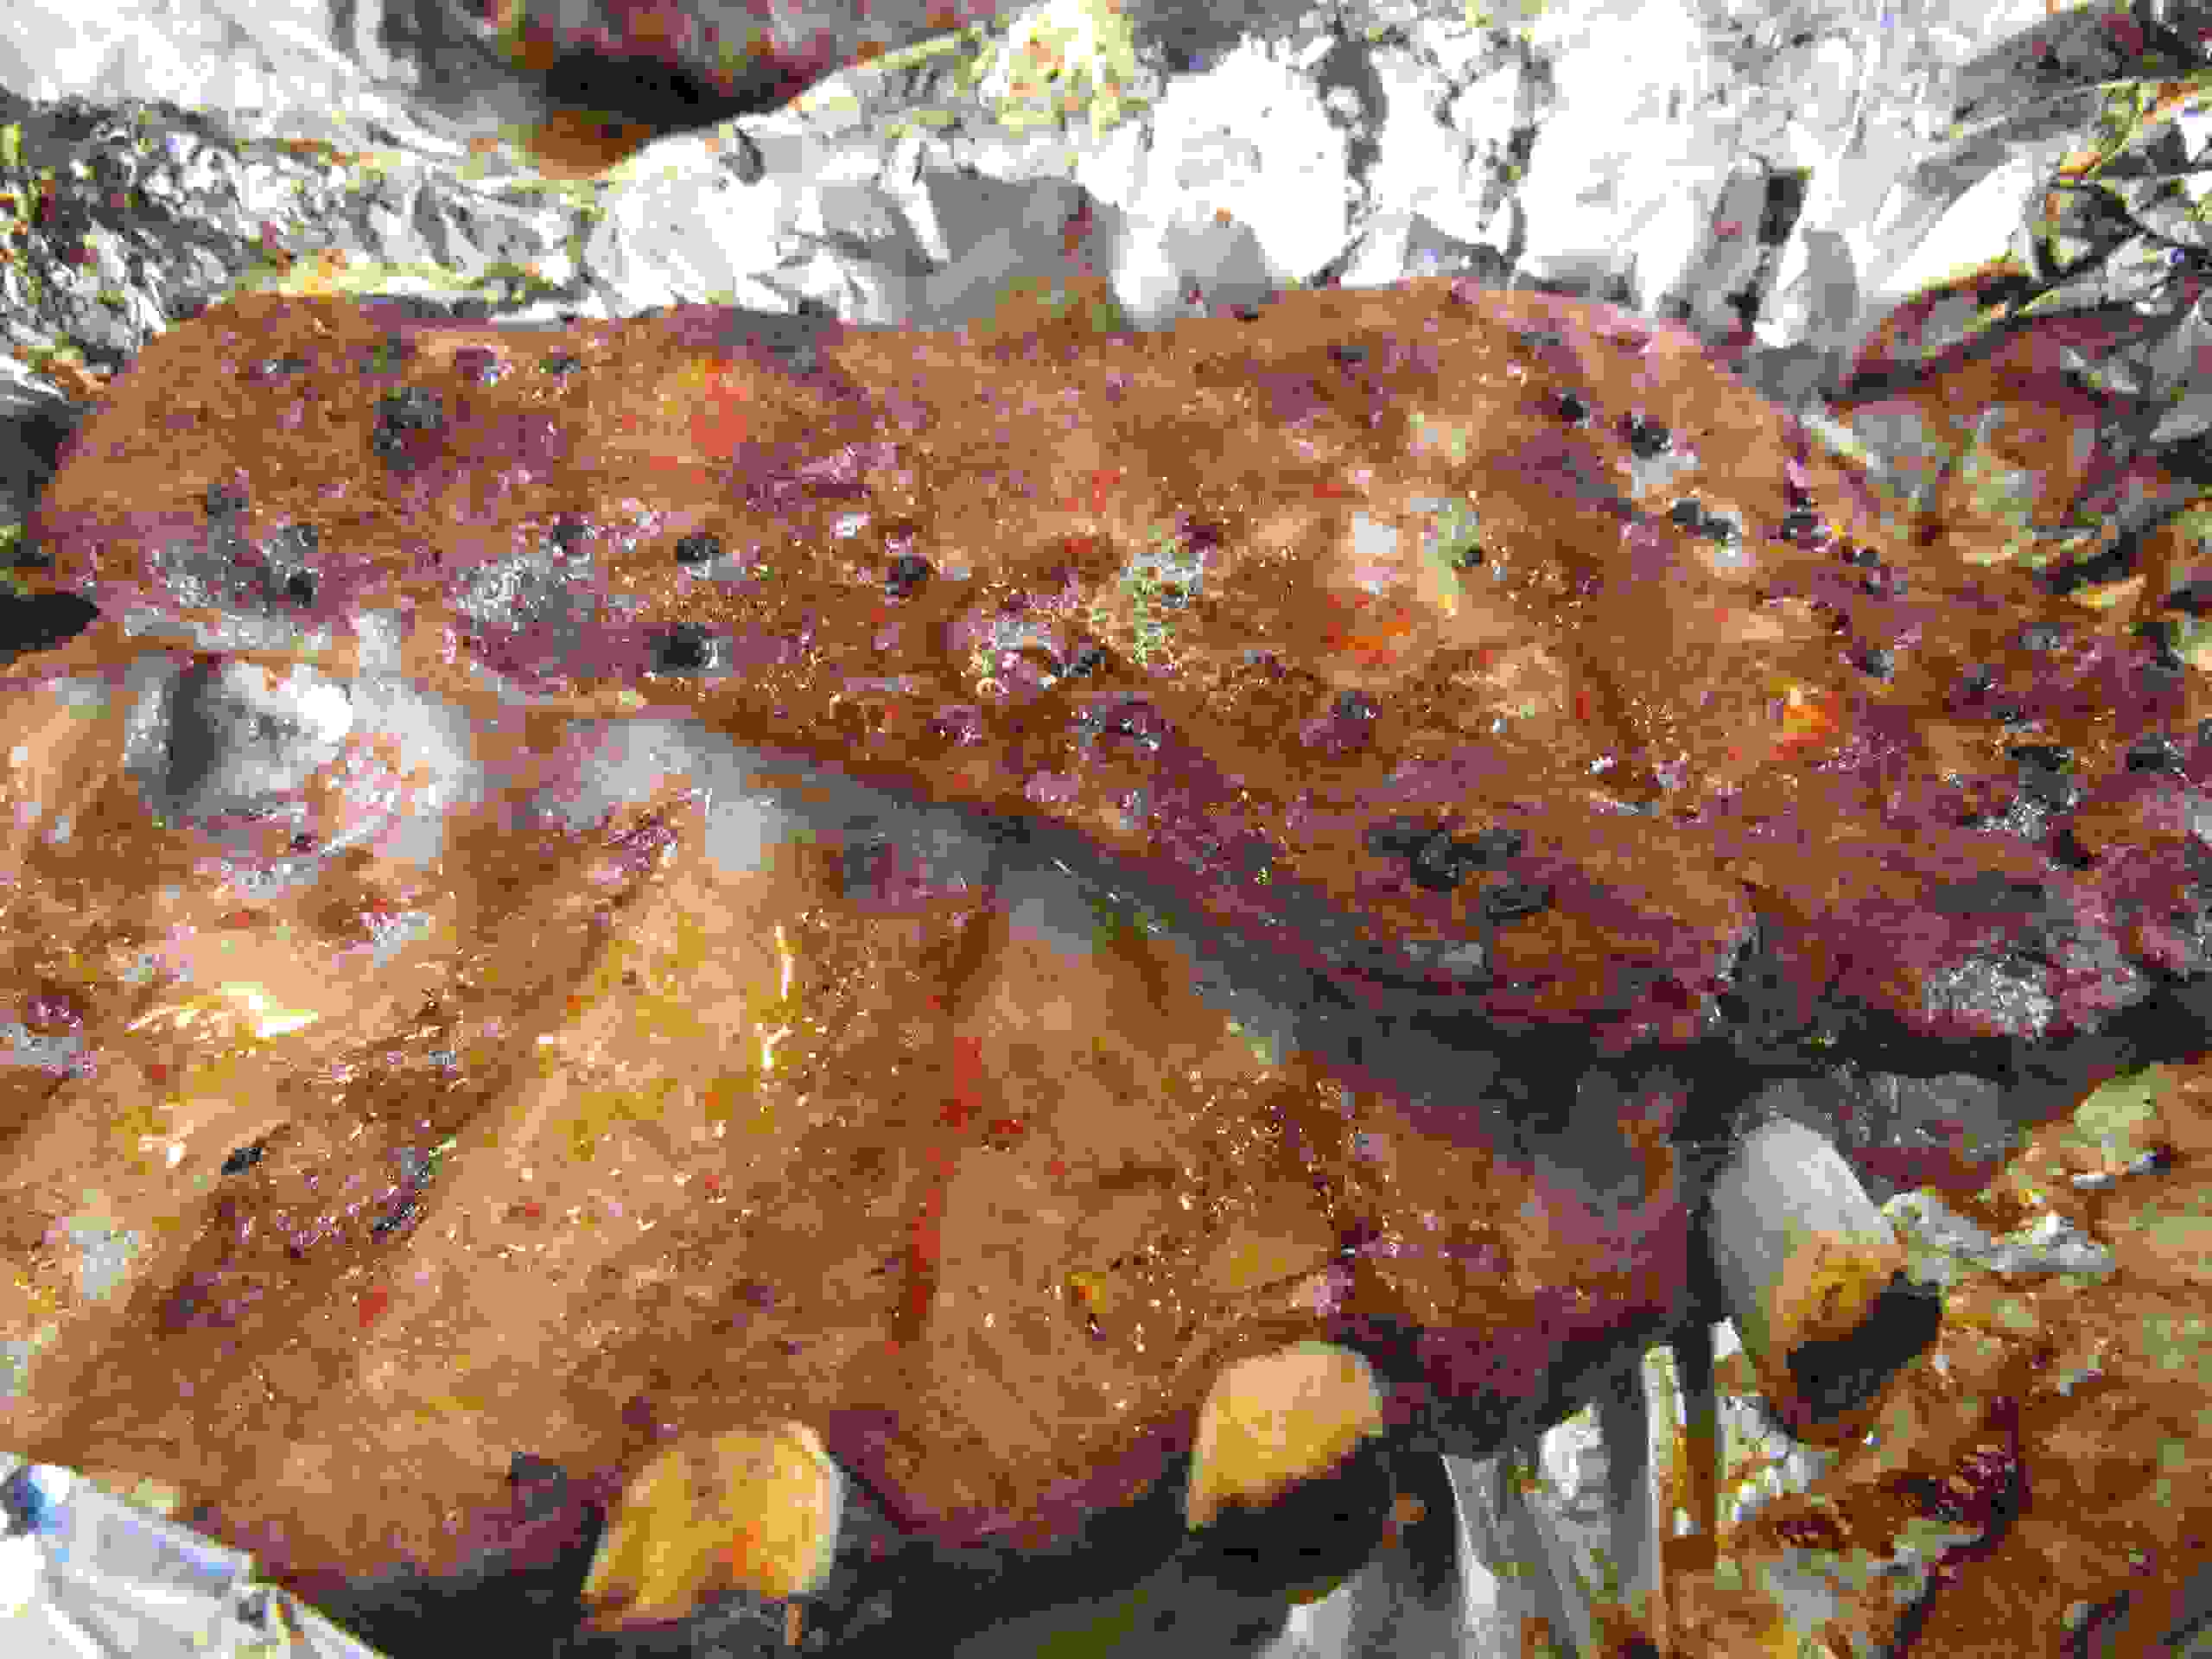 Barbecued spare ribs sizzling on top of foil seasoned with Garlic Capital Lemon Pepper seasoning